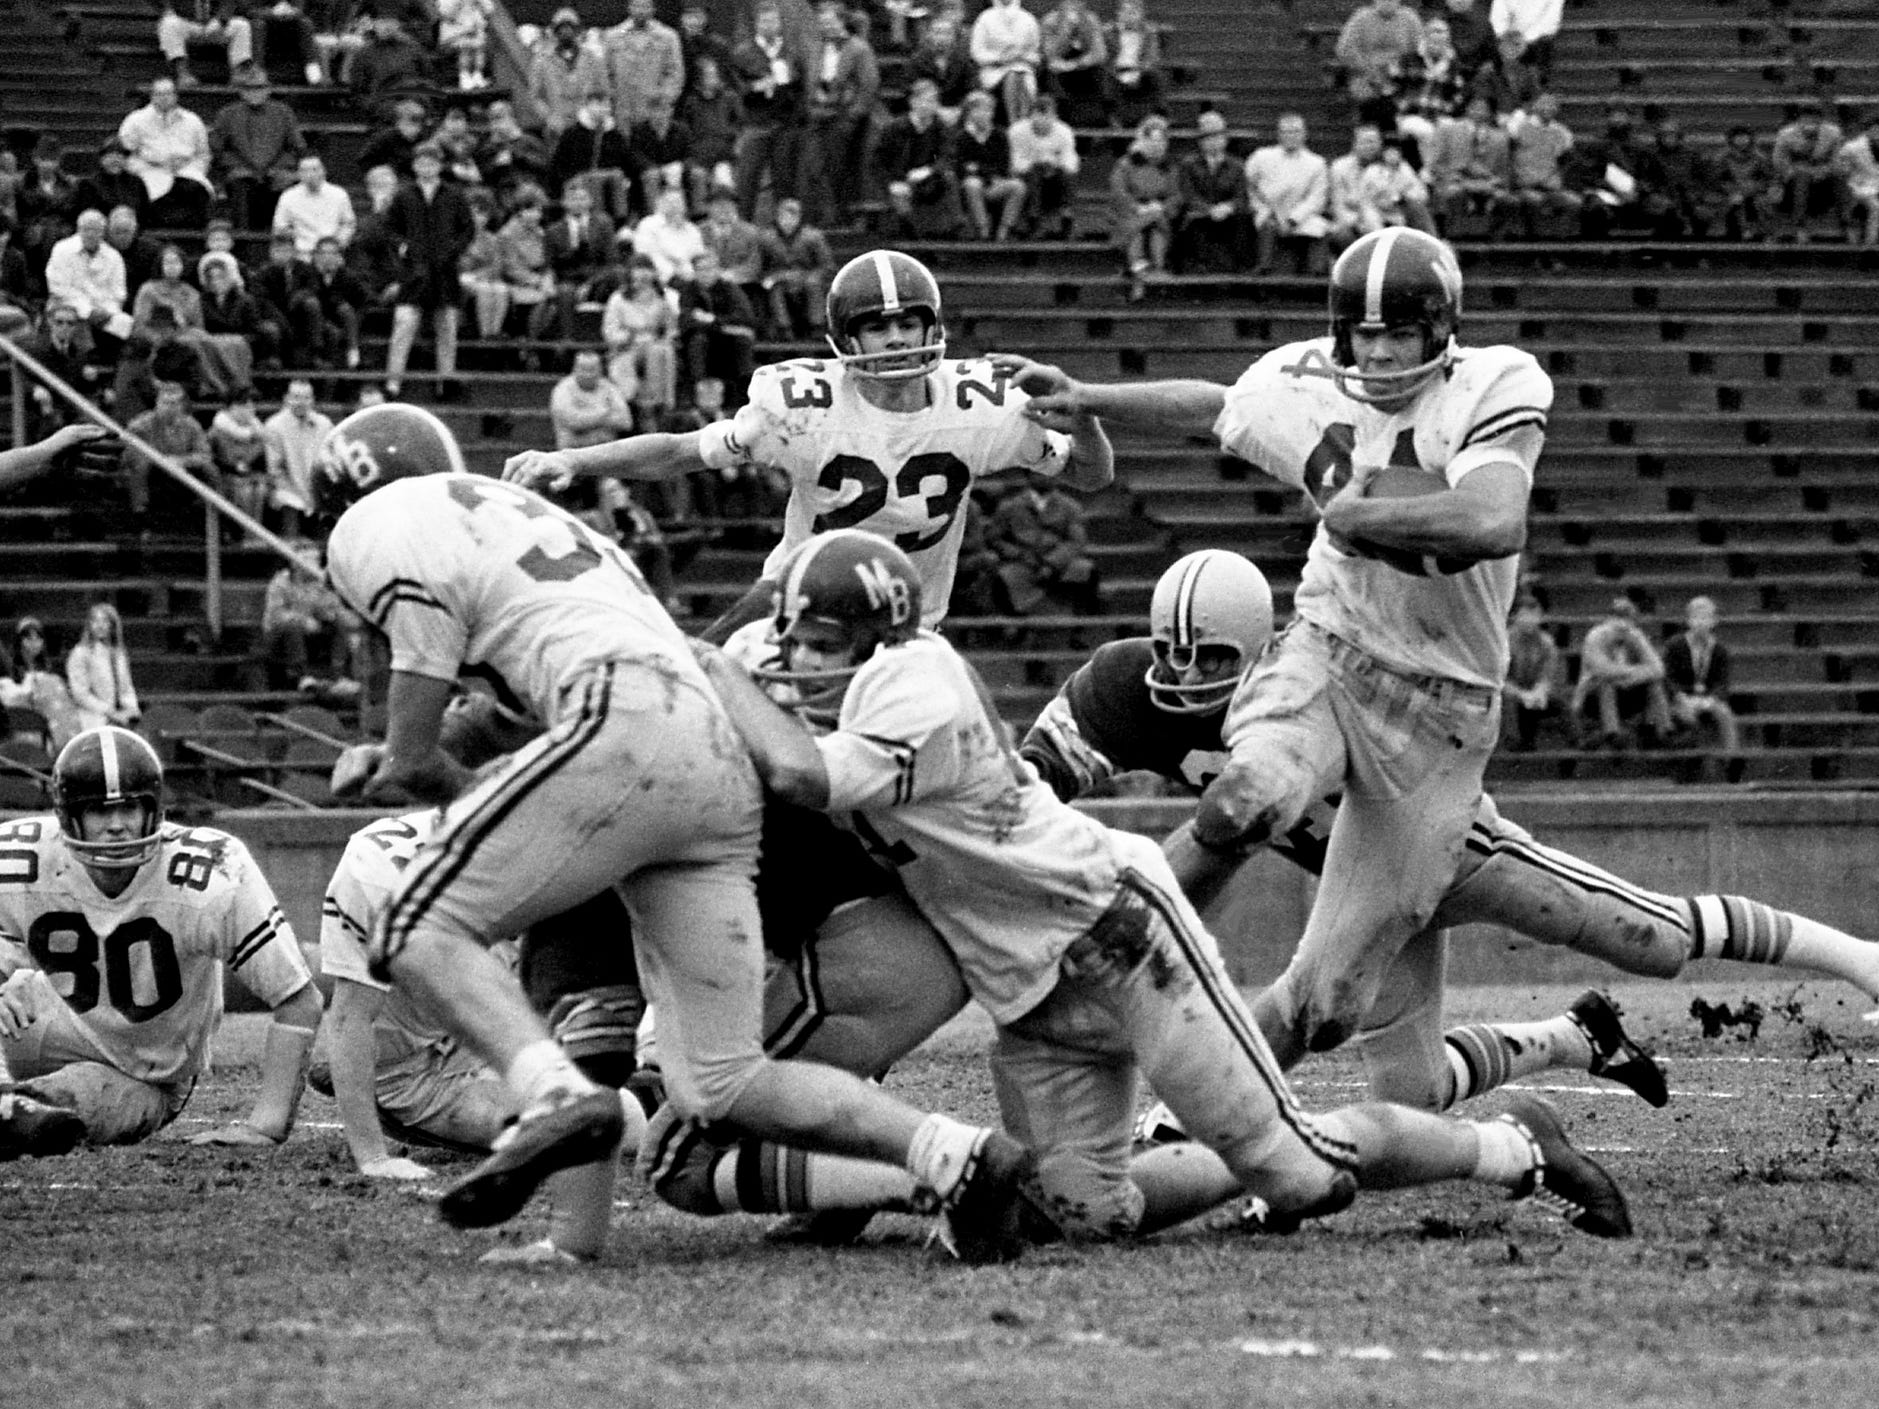 MBA's NIL Back of the Year Jeff Peeples (44) moves away from the pack for some of his 109 yards rushing in their 35-7 victory over Gallatin High in the Clinic Bowl before an estimated 18,000 at Vanderbilt's Dudley Field on Nov. 28, 1968. Peeples was voted MBA's outstanding player in the Clinic Bowl.